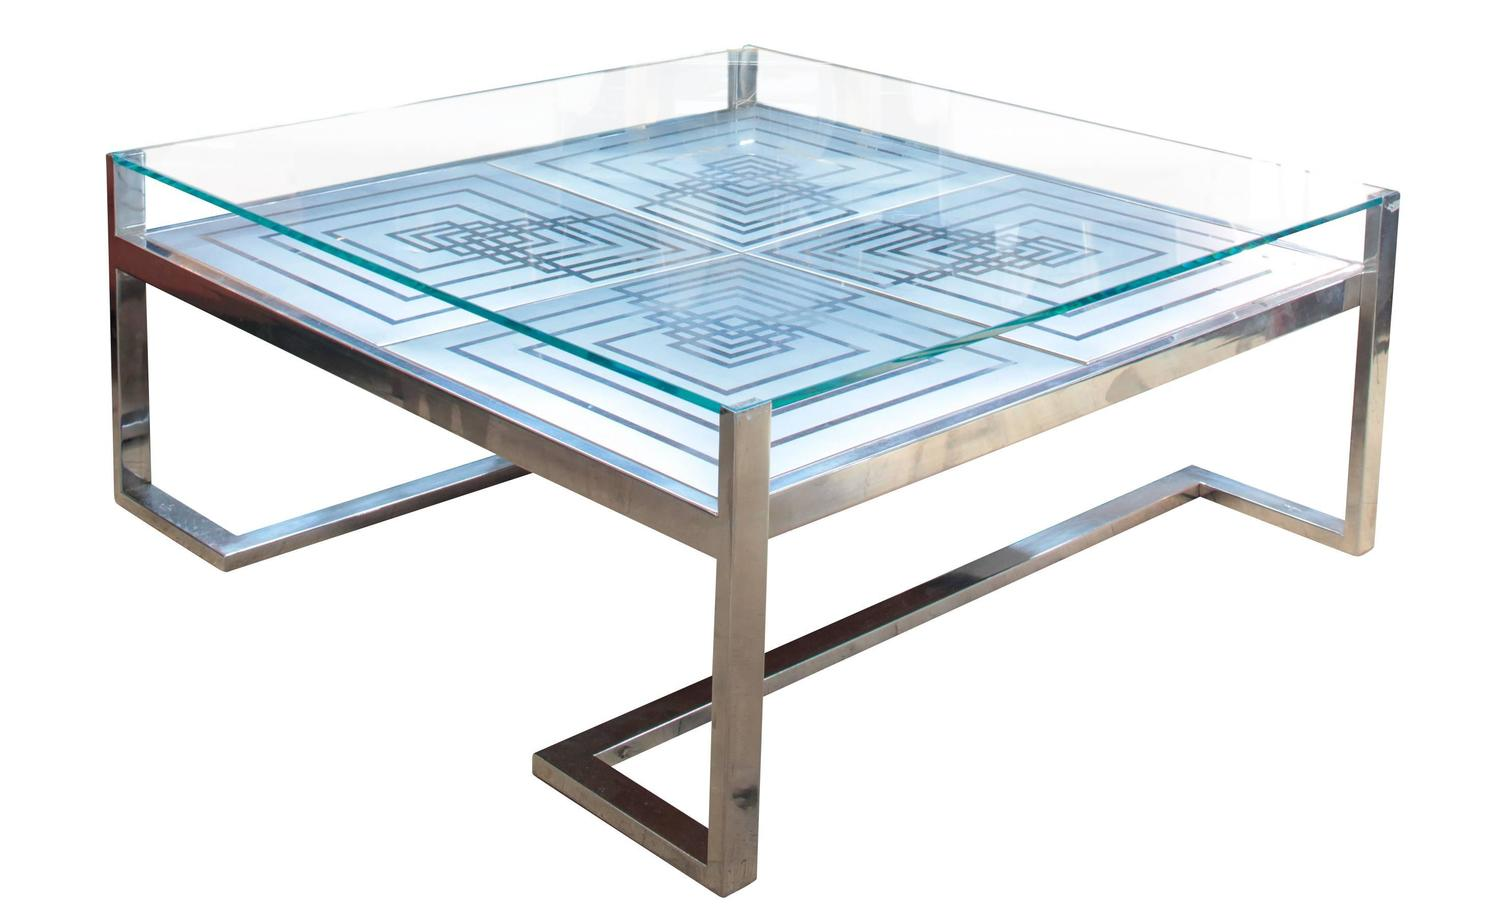 1970s Romeo Rega Coffee Table In Stainless Steel And Glass For Sale At 1stdibs